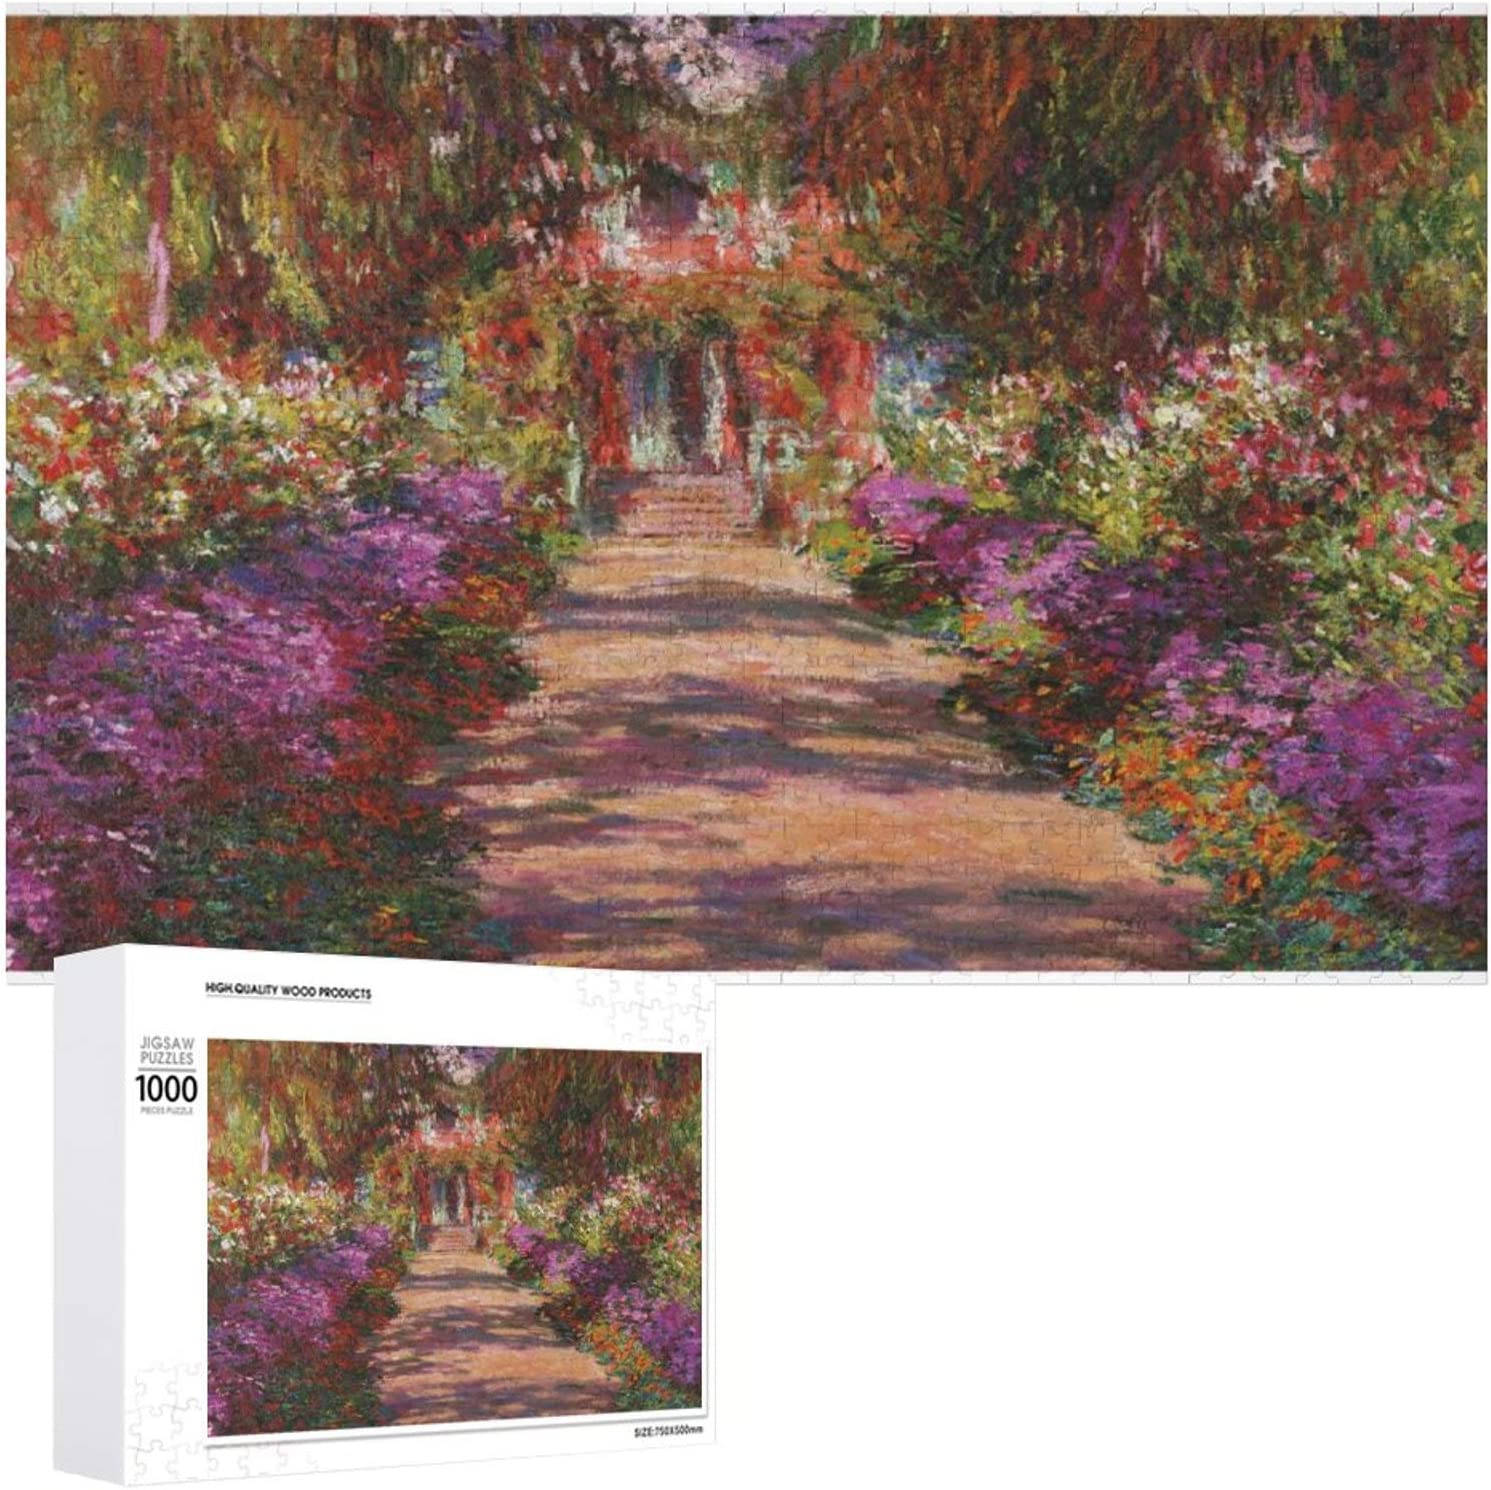 1000 PCS Wooden Puzzle - Pathway in Monets Garden Jigsaw Puzzles - Educational Fun Game for Adults and Kid - Family Decorations Pattern Toy - Wall Art Home Decor Jigsaw Puzzles